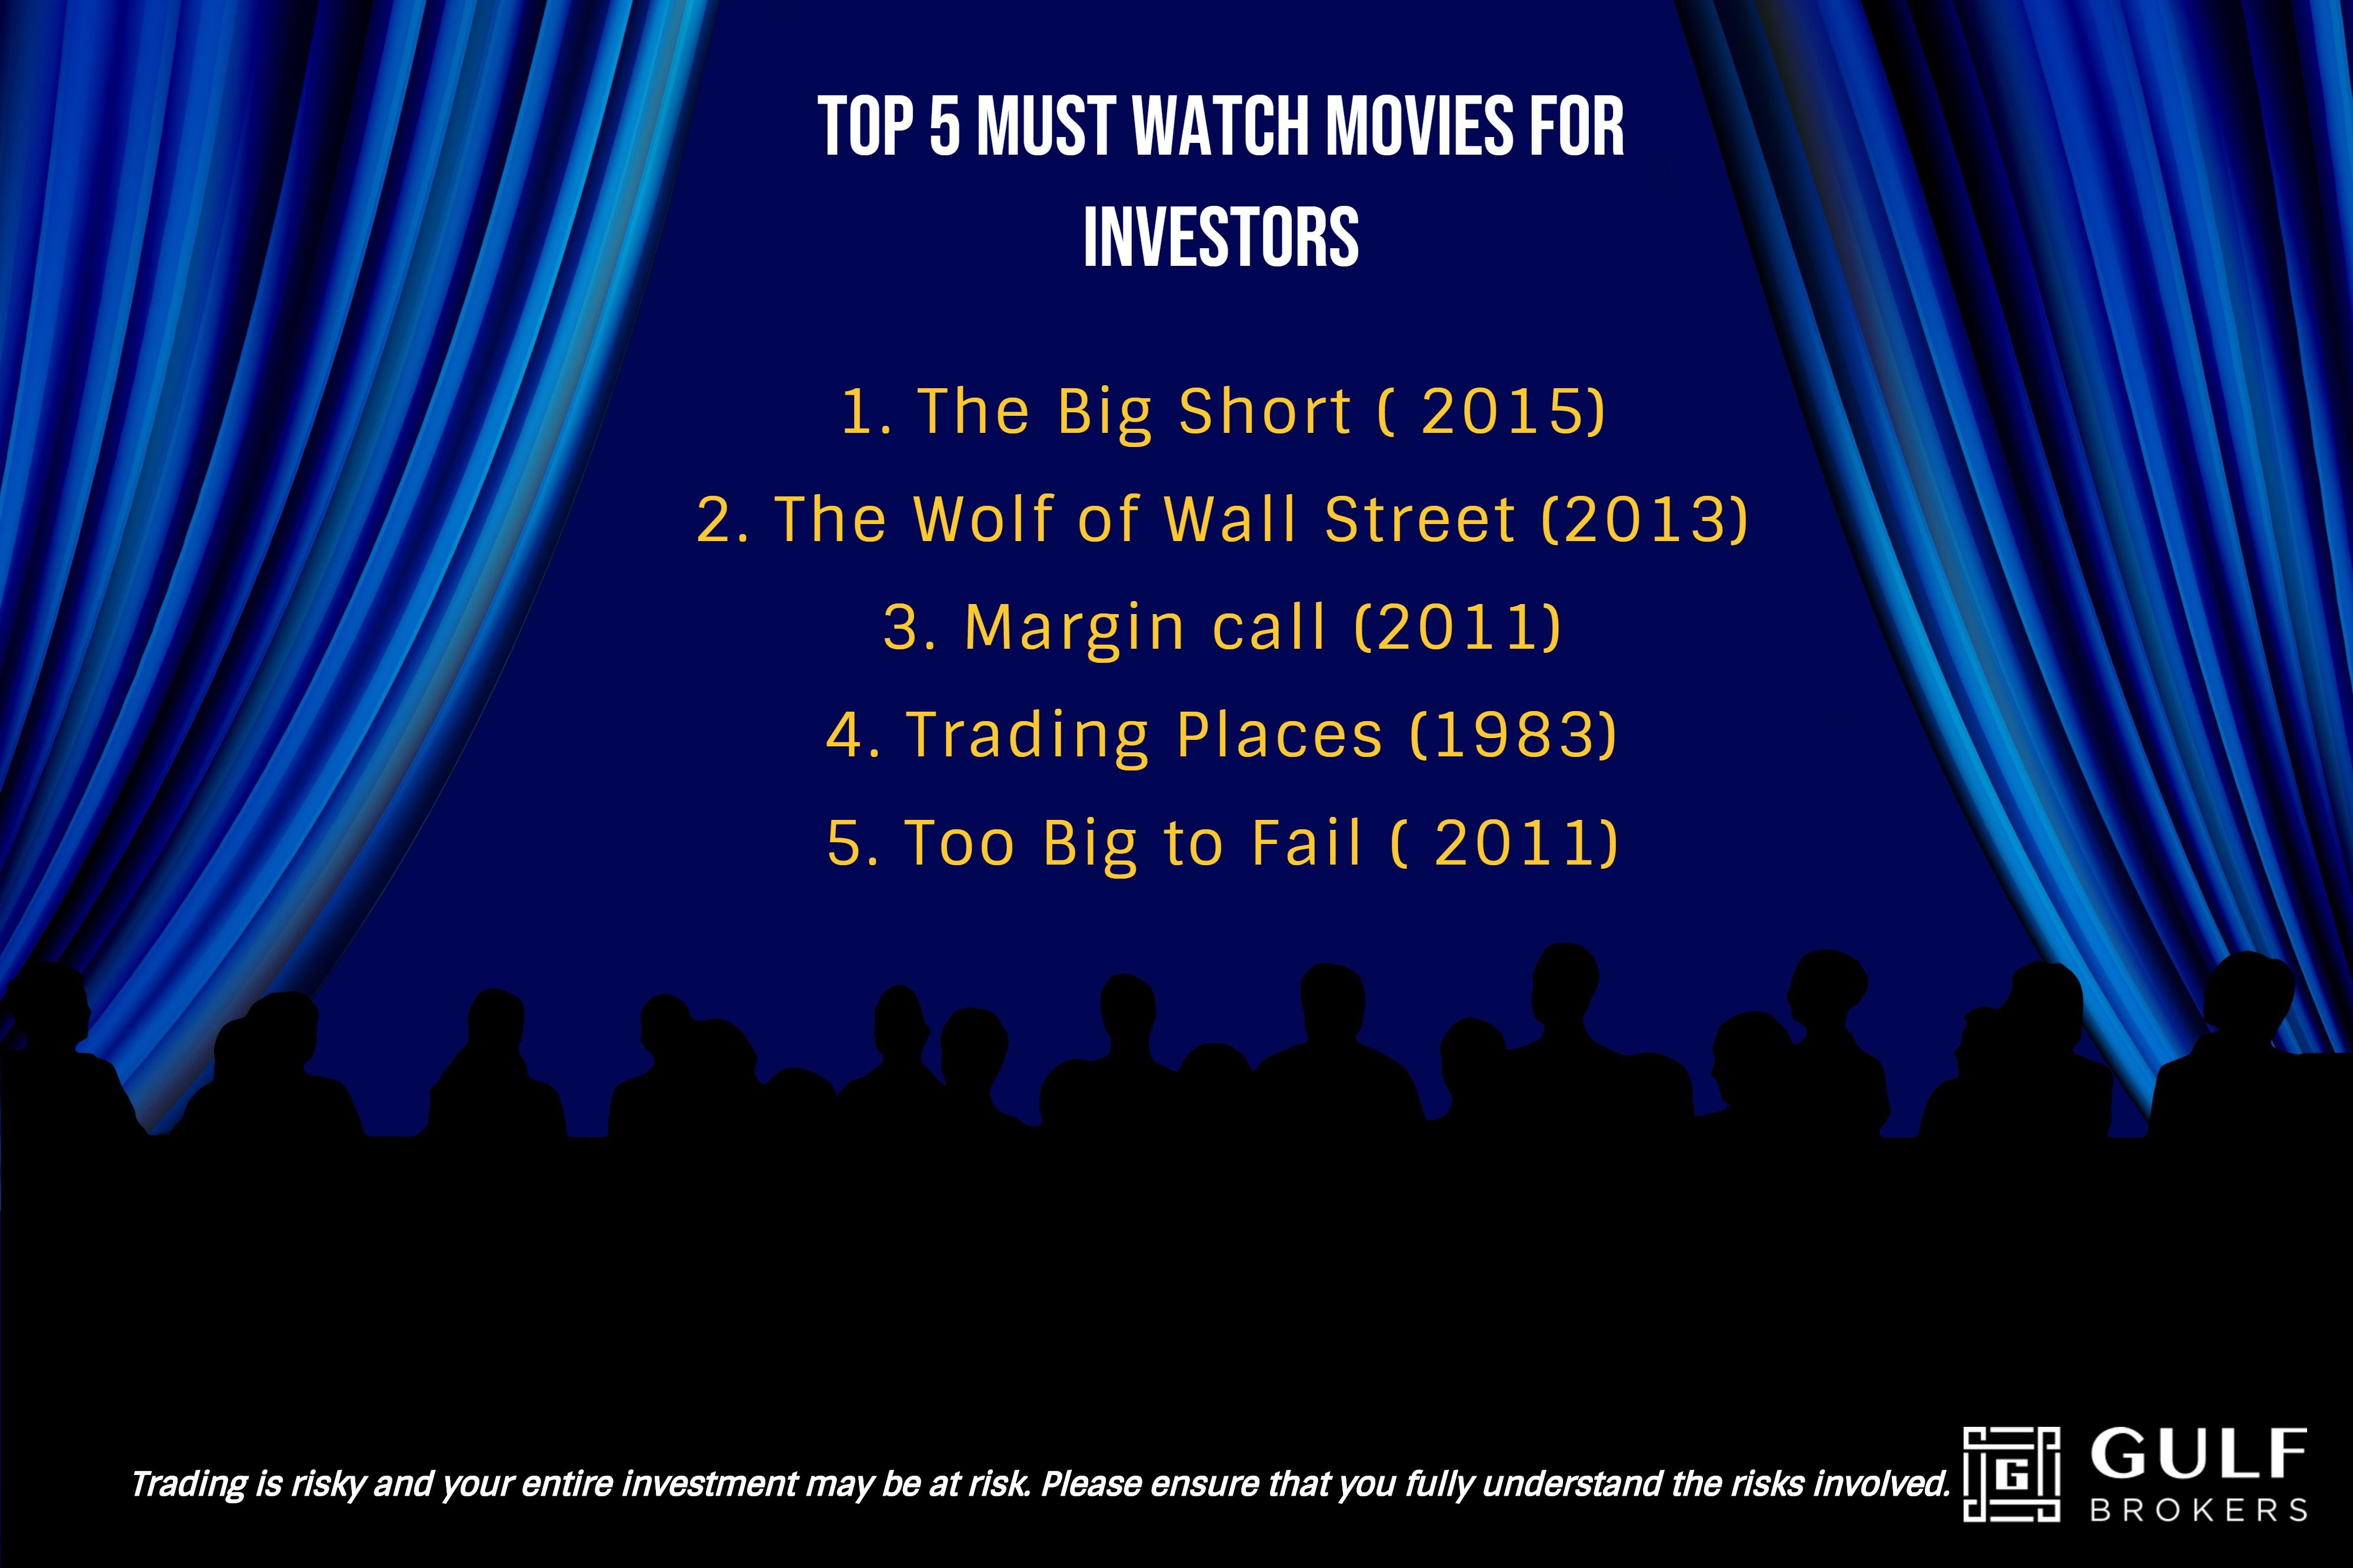 5 Best Movies For Investors Investing Good Movies Investors